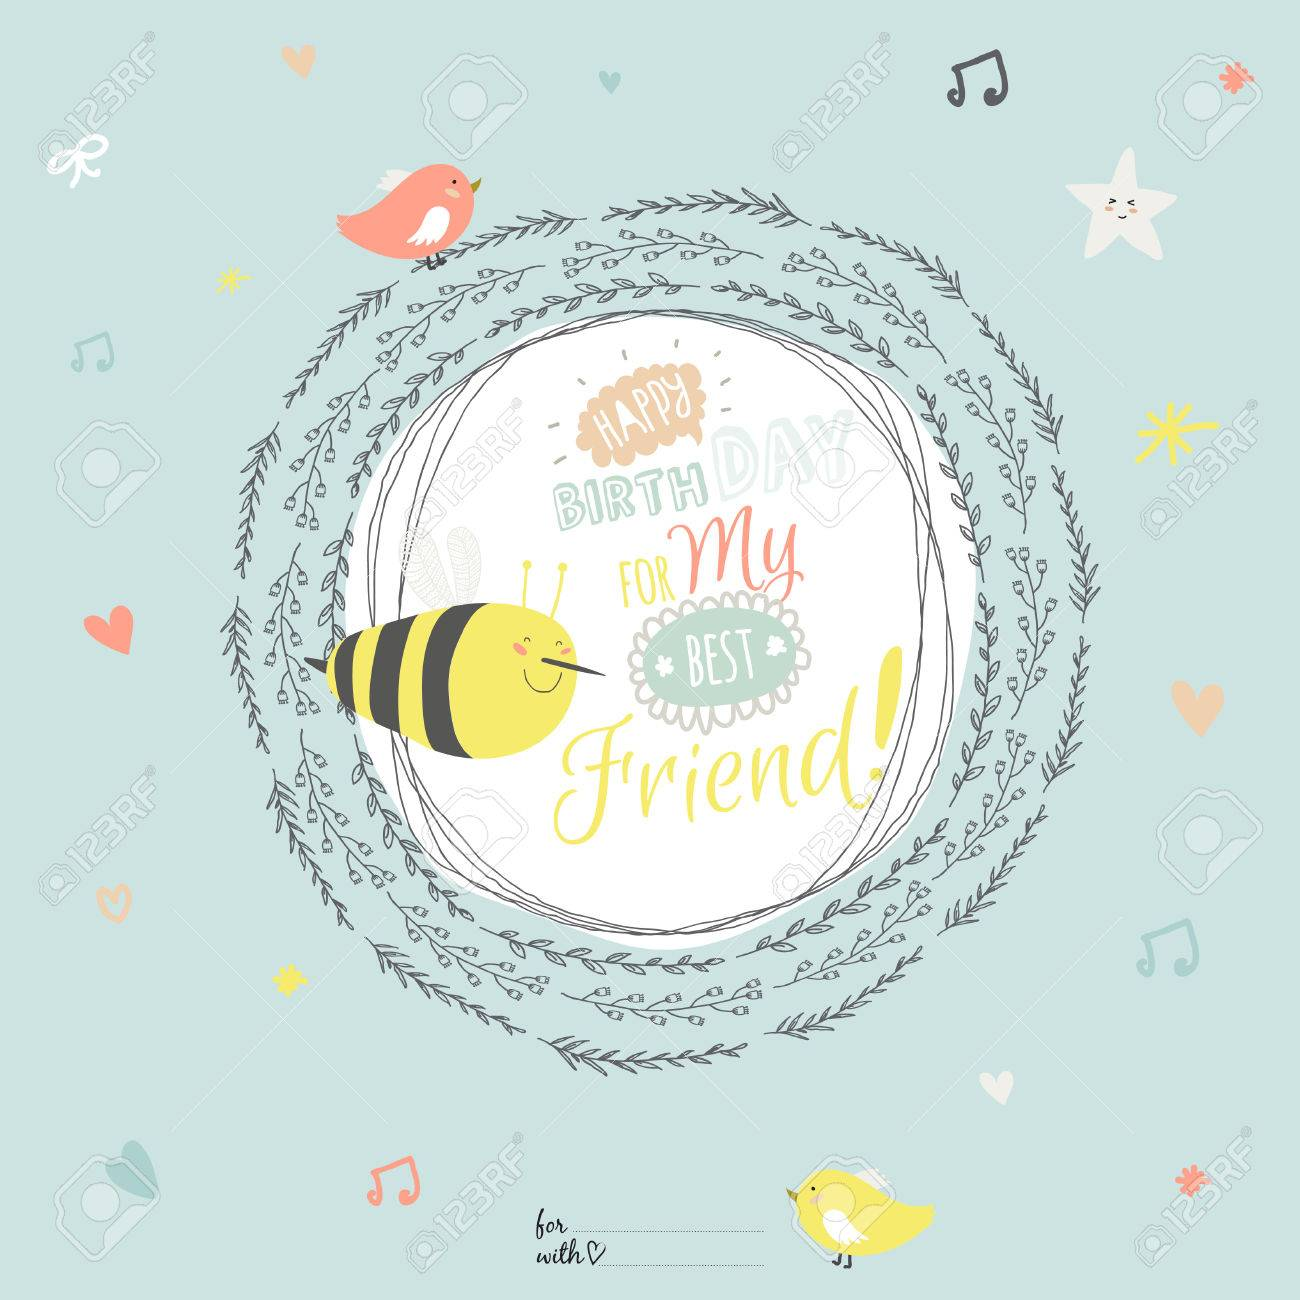 romantic and love happy birthday card with greeting wish to best friend and cute bee in